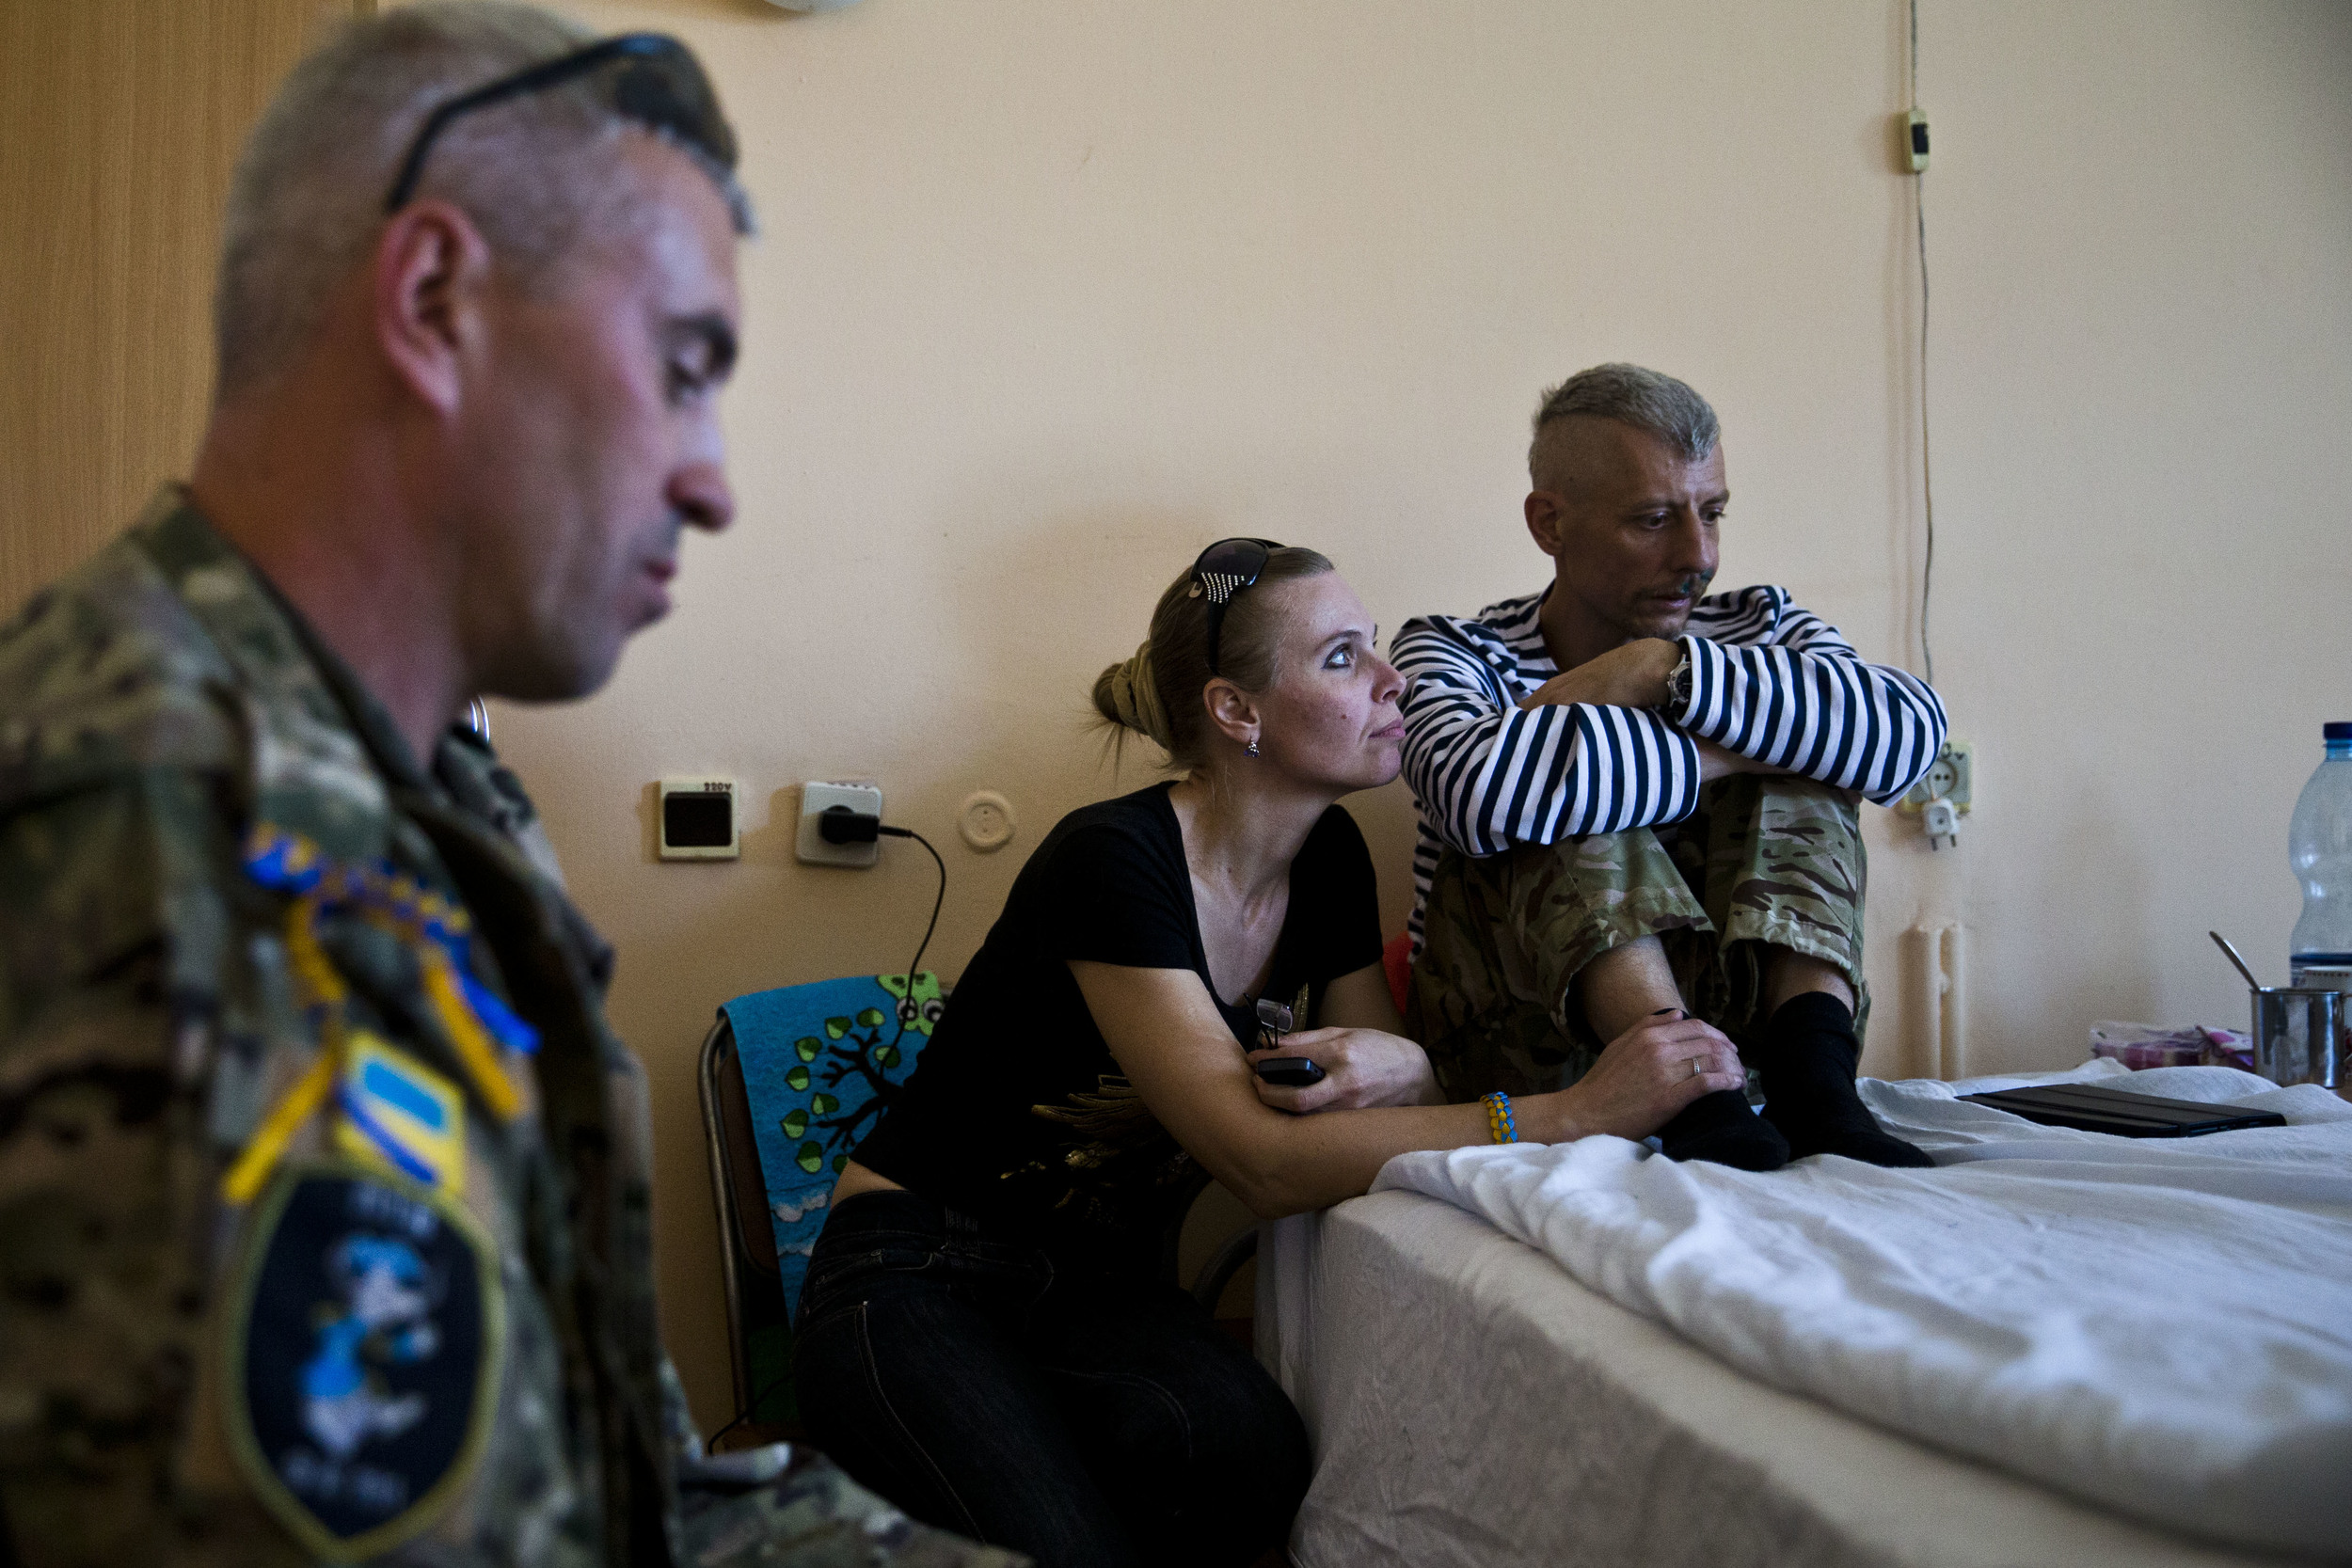 Wounded soldiers are seen in a hospital in Dniepropetrovsk